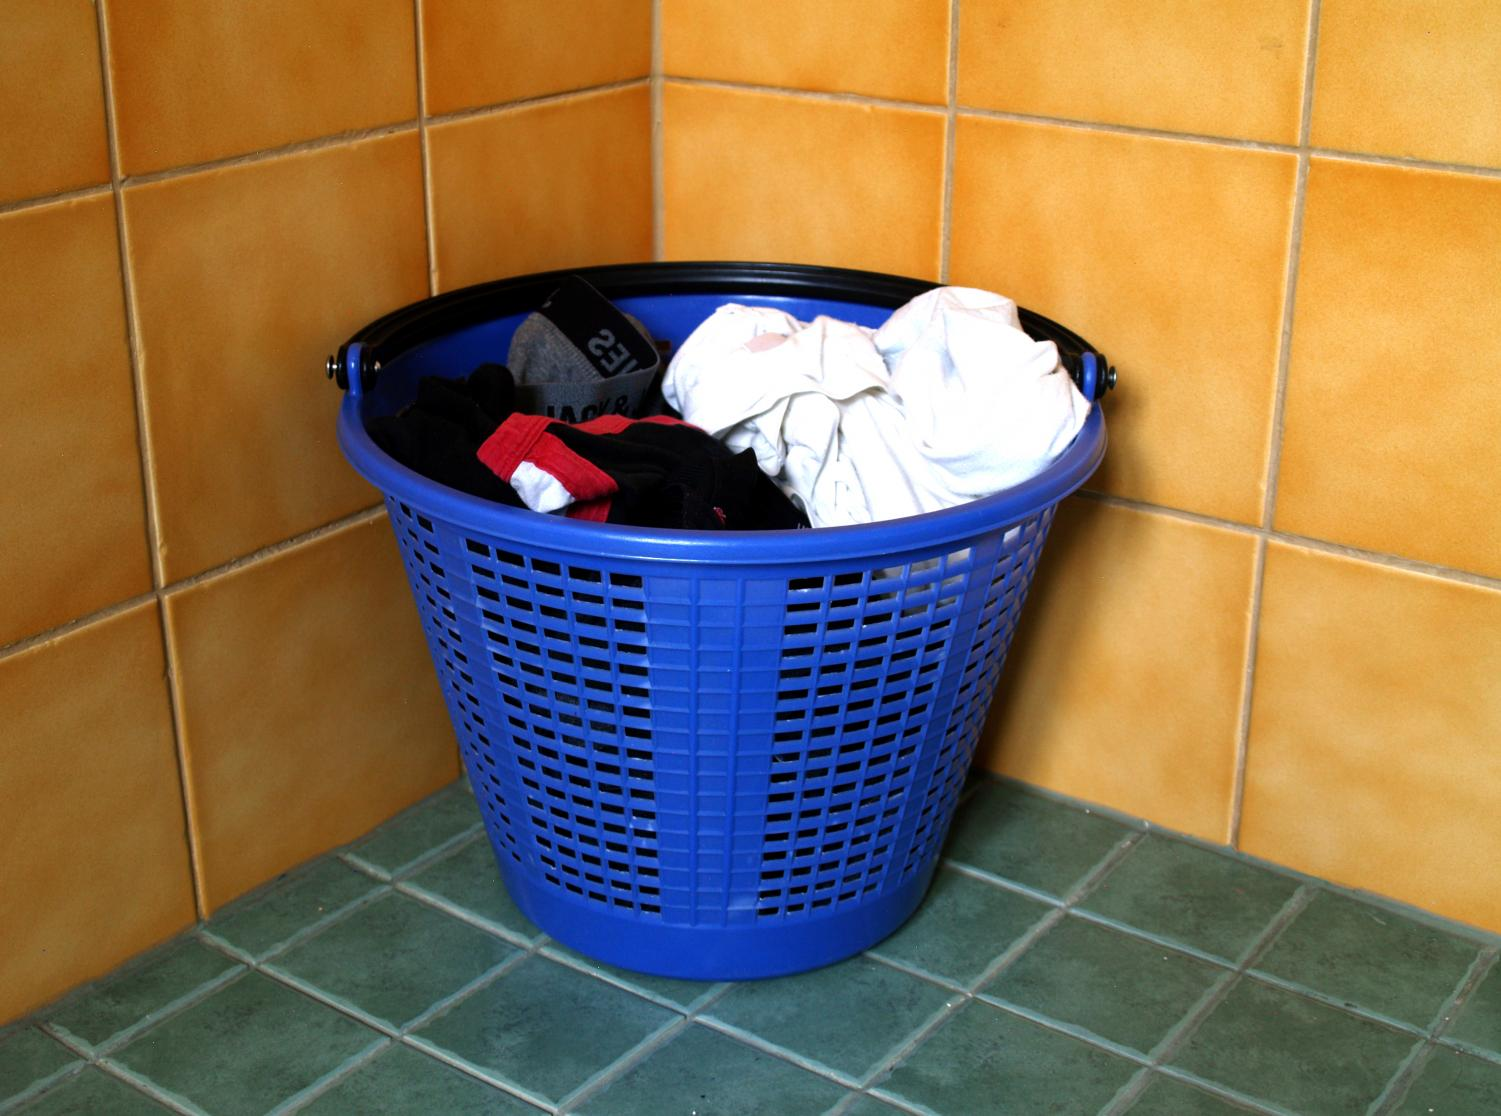 a bundle of clothes in a basket